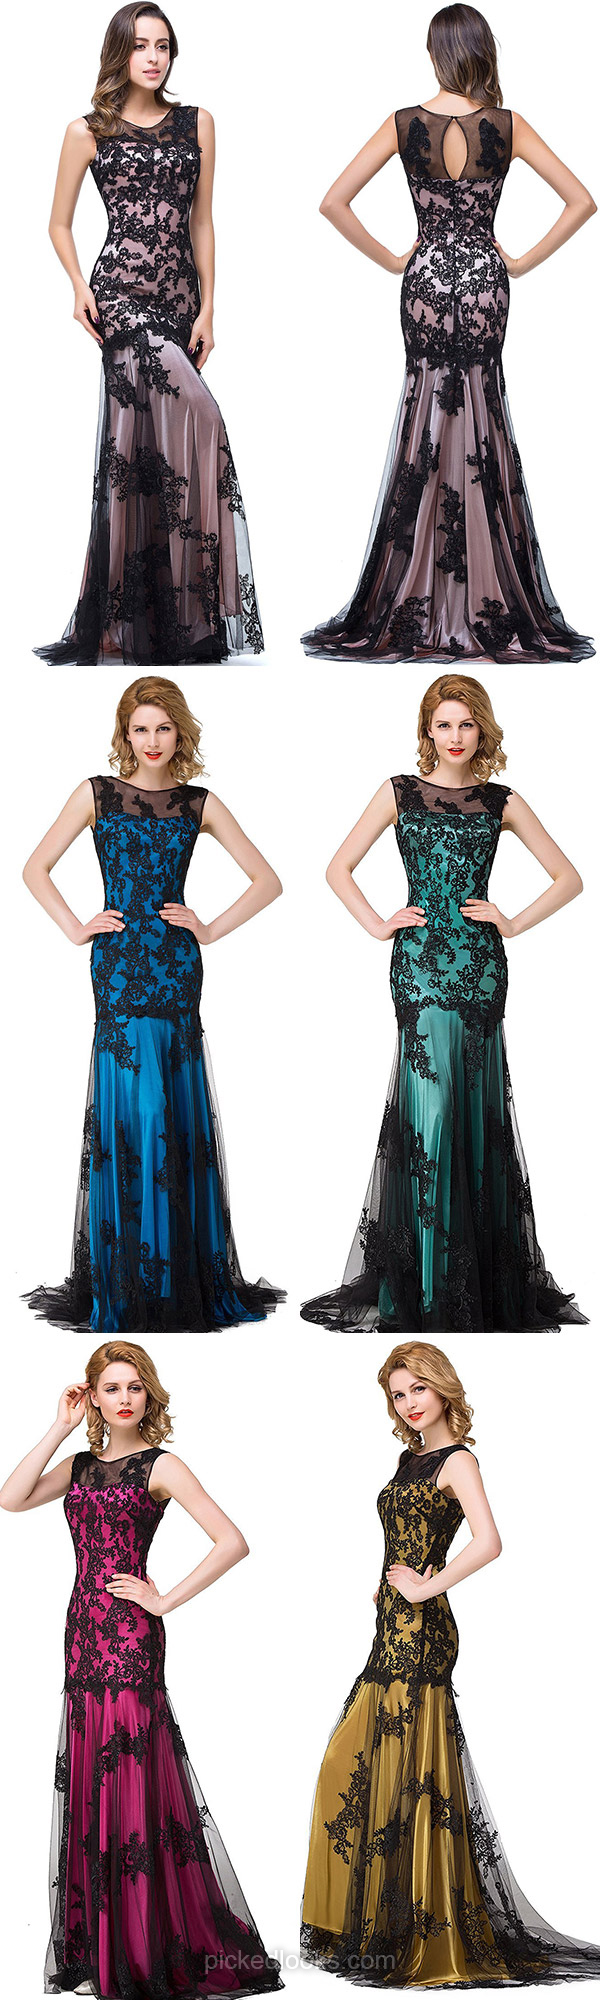 Long Ball Dresses Mermaid Lace Prom Dresses For Teens Modest